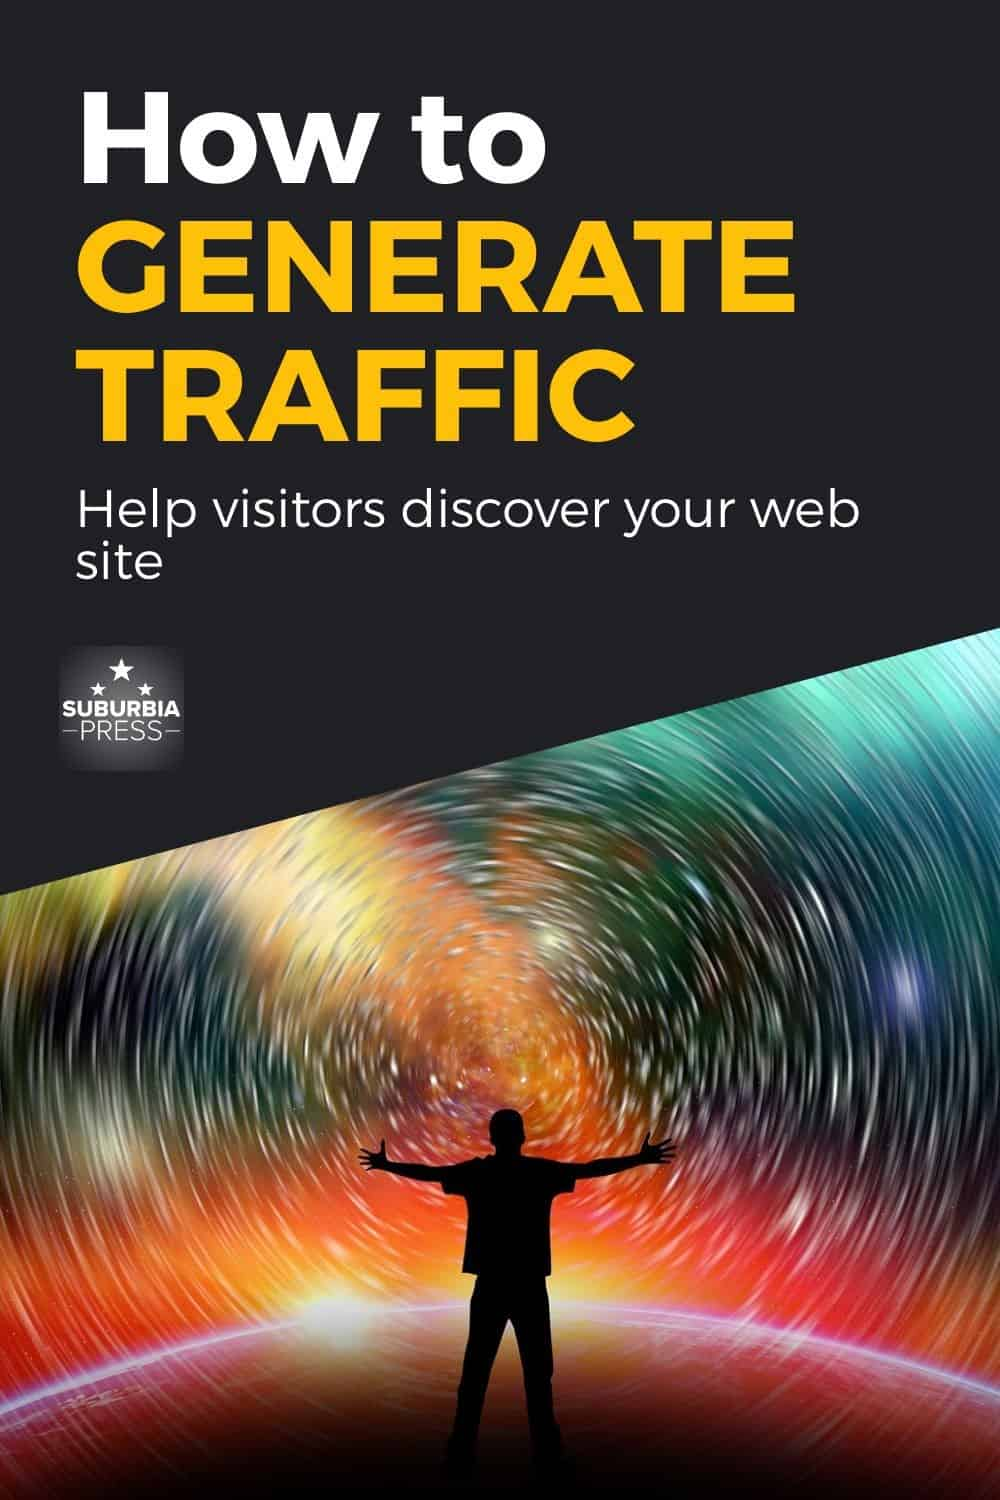 Generate Traffic to Your Web Site